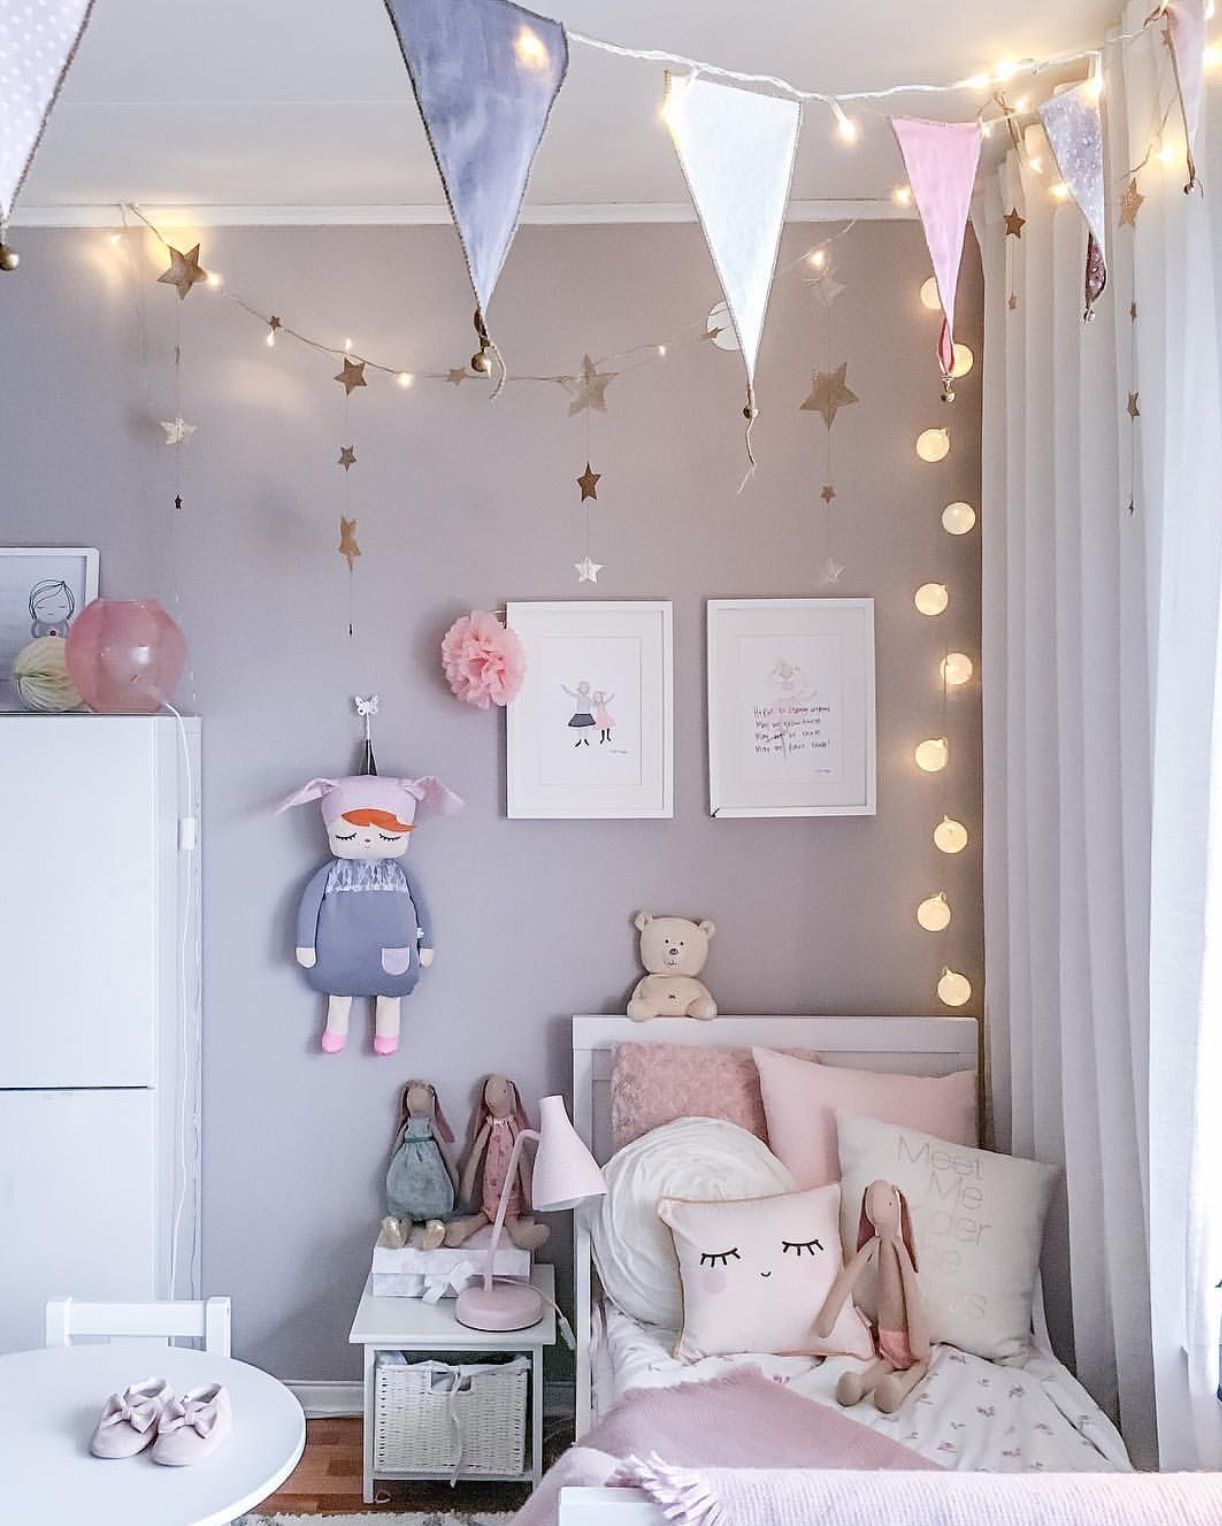 Pin de lisa en pinterest habitaciones ni a for Cuartos de ninas con luces